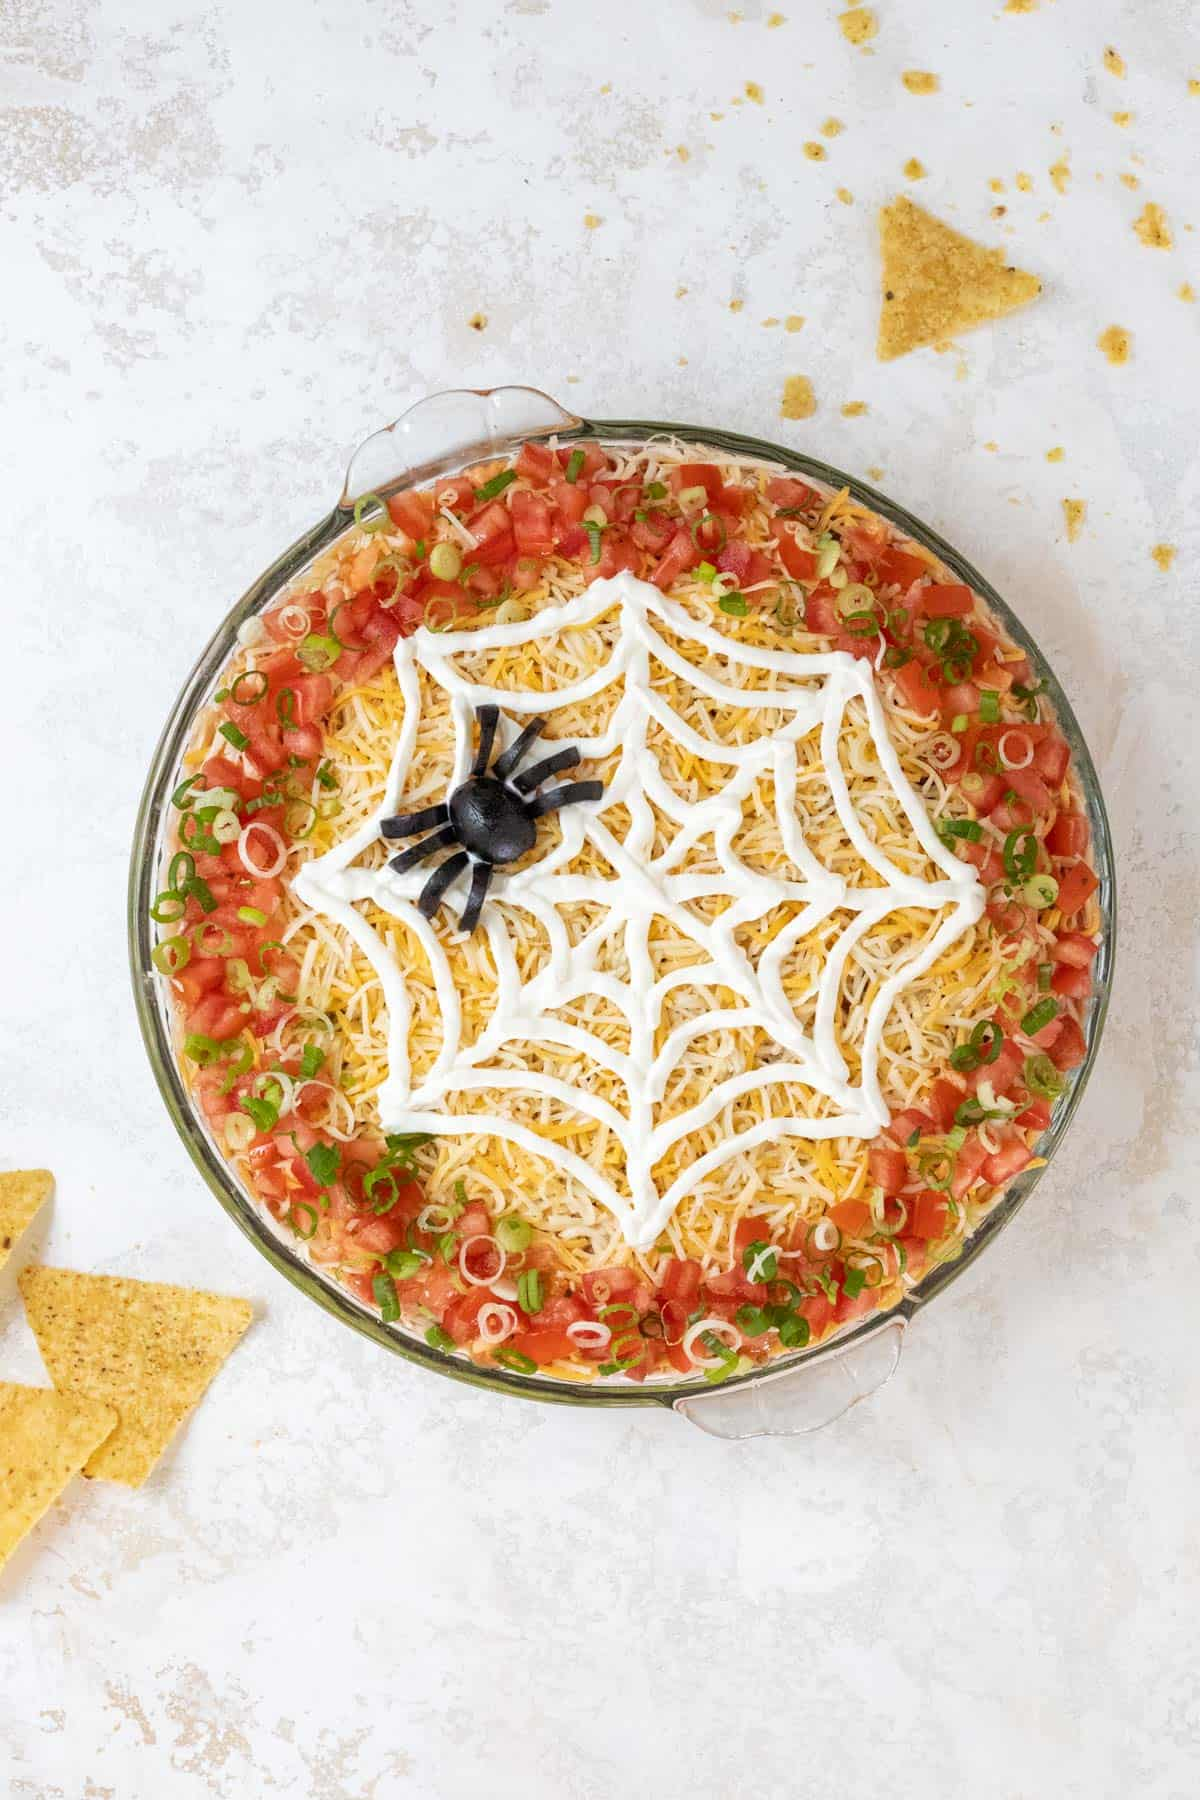 A completed Halloween 7 layer taco dip with a black olive spider on top of the sour cream spiderweb.